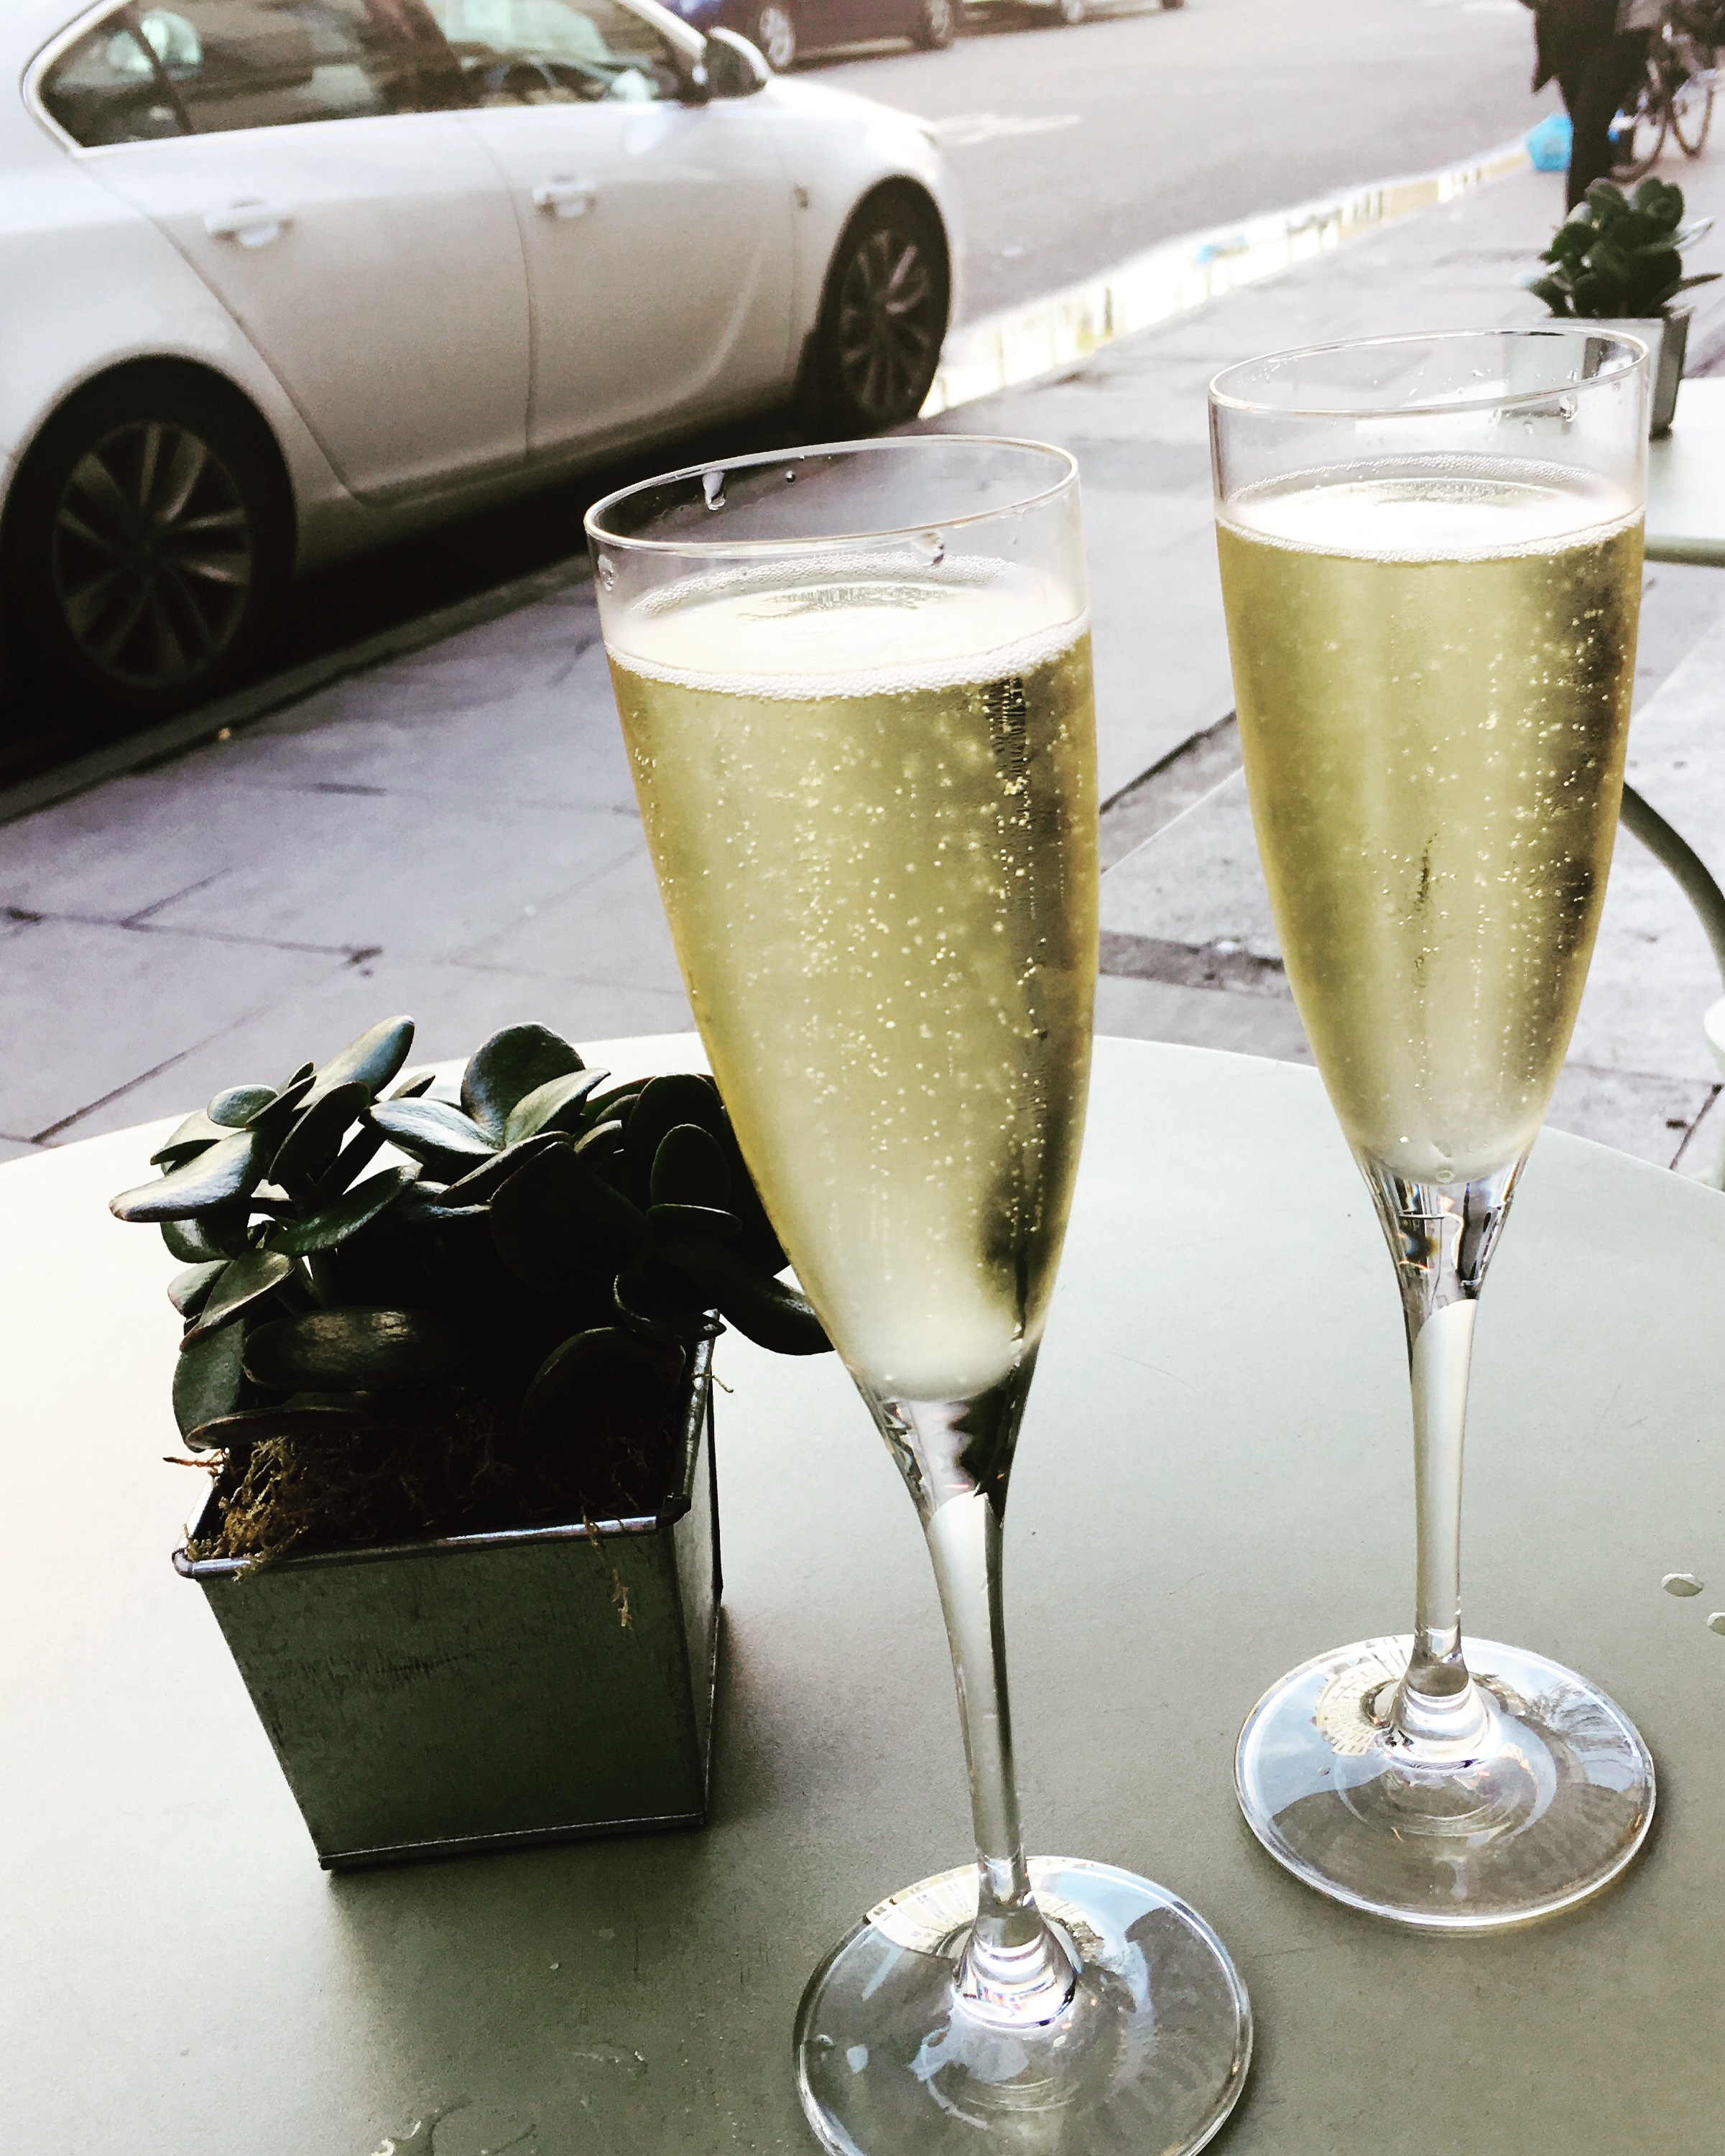 Our very swanky celebrations upon launching the website